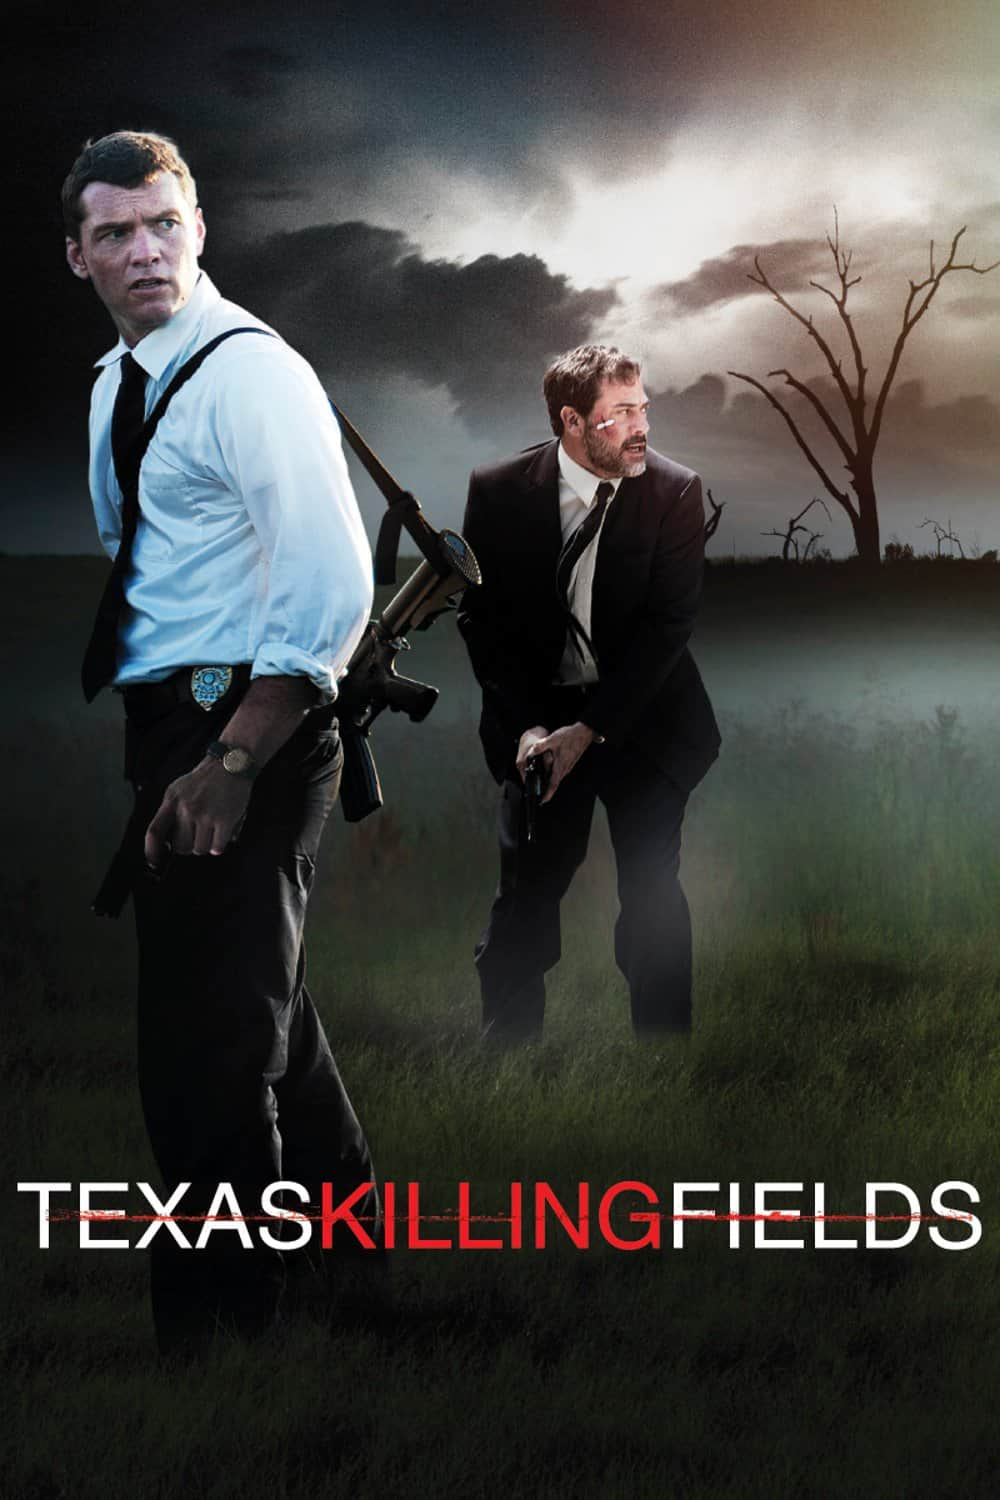 Texas Killing Fields, 2011